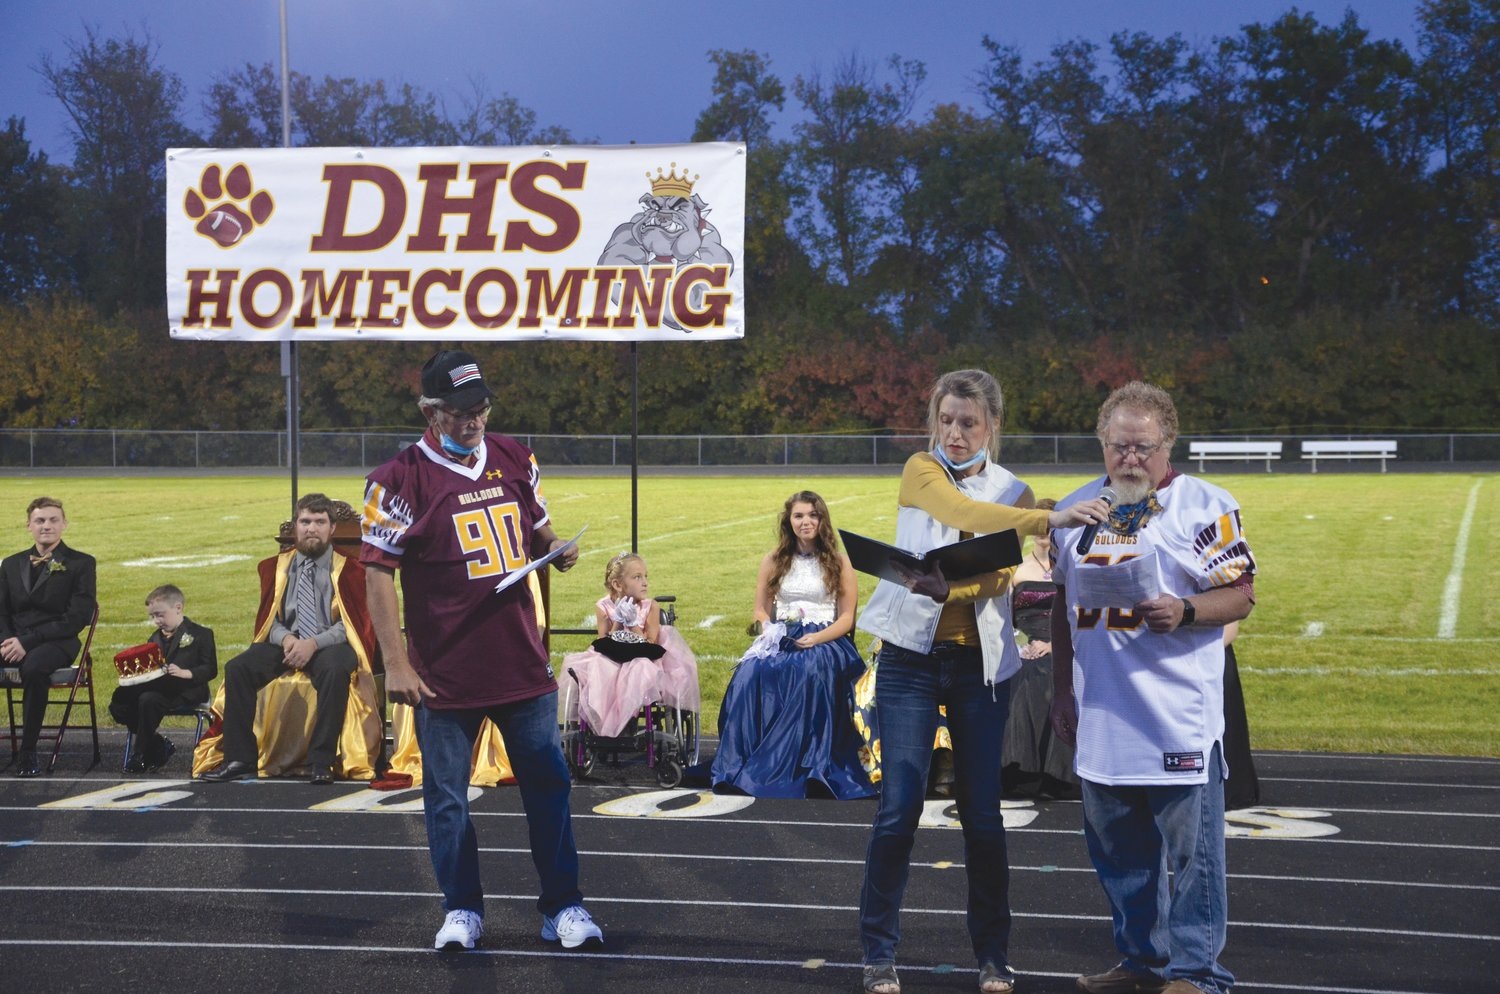 Former principal Larry Janish, DHS parent Tristin Gruenhagen and former DHS student Kyle Lee participate in a homecoming skit.